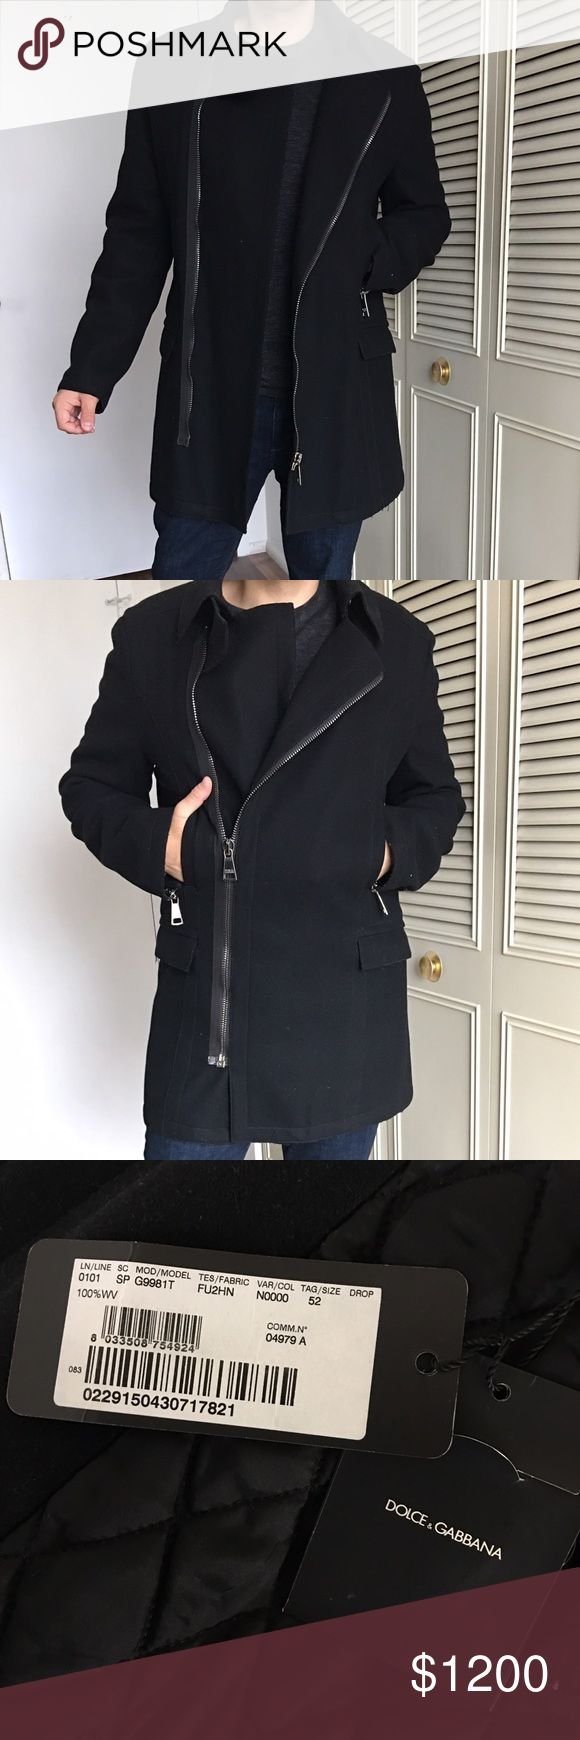 Dolce & Gabbana coat Authentic Dolce & Gabbana coat, black, tick and very warm perfect for winter, real elegant great for any occasion, size 52, it's one of my favorite items, always got compliments from it. Dolce & Gabbana Jackets & Coats